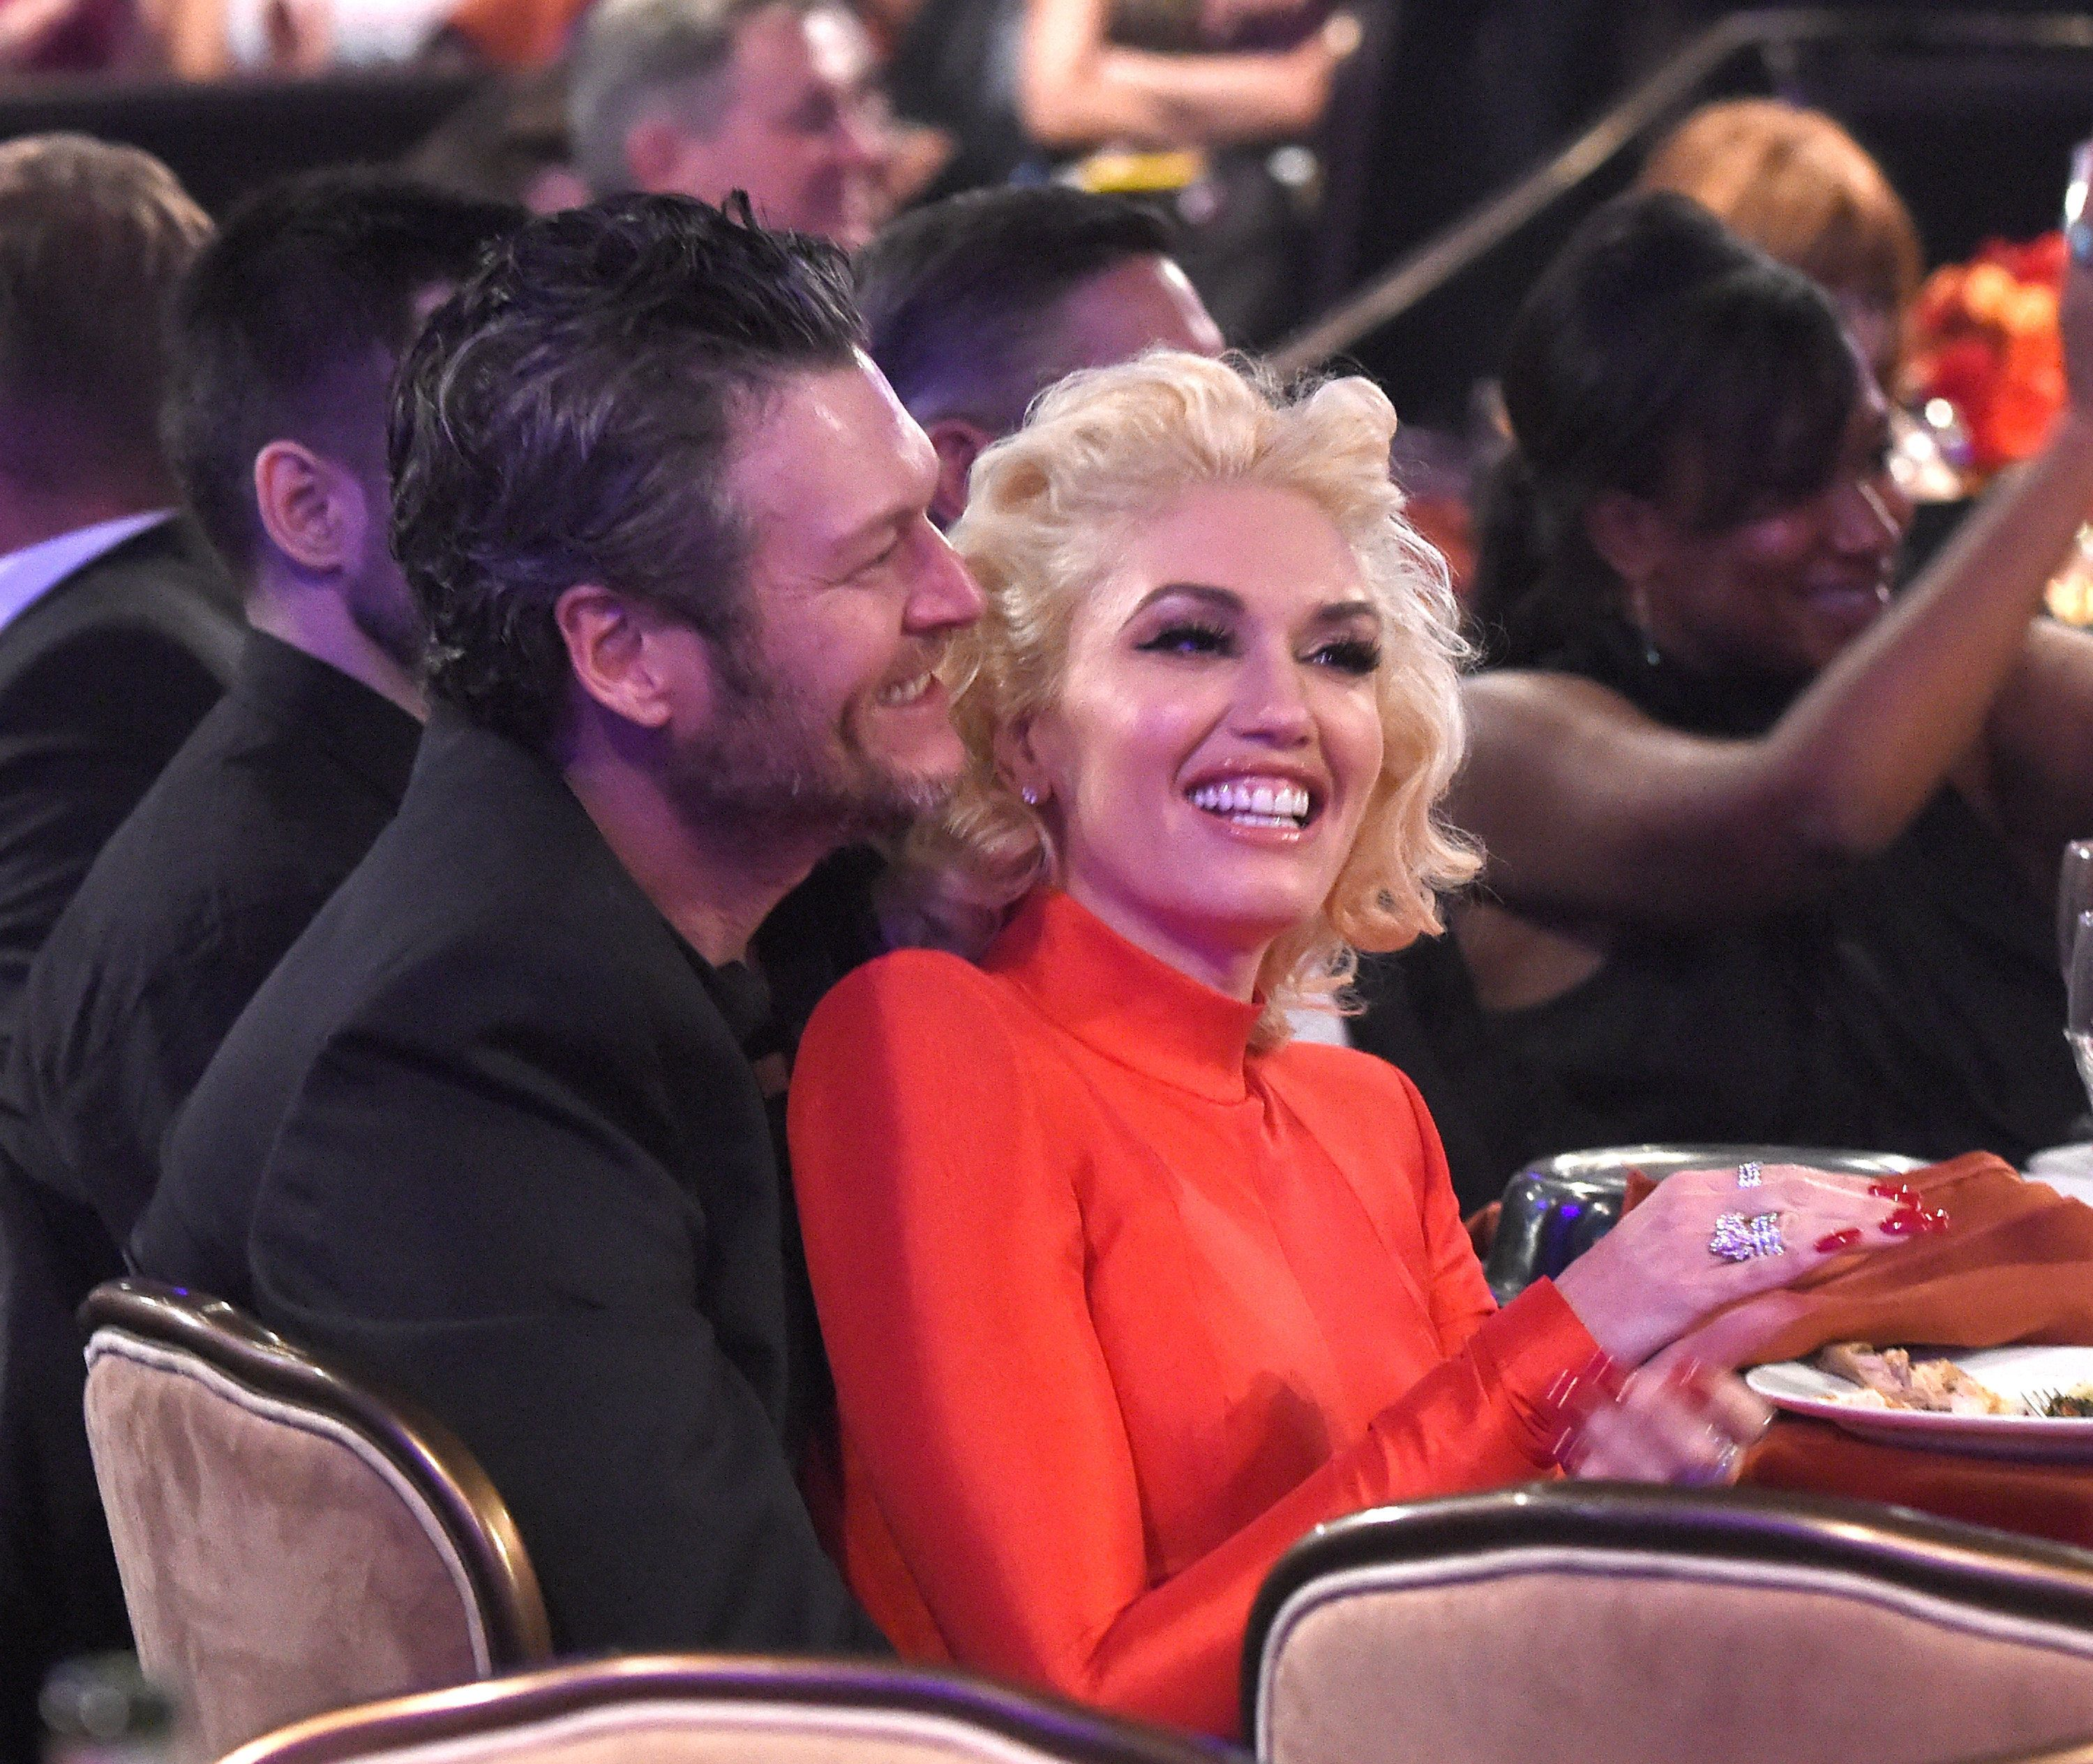 BEVERLY HILLS, CA - FEBRUARY 14:  Blake Shelton and Gwen Stefani attend the 2016 Pre-GRAMMY Gala and Salute to Industry Icons honoring Irving Azoff at The Beverly Hilton Hotel on February 14, 2016 in Beverly Hills, California.  (Photo by Kevin Mazur/WireImage)